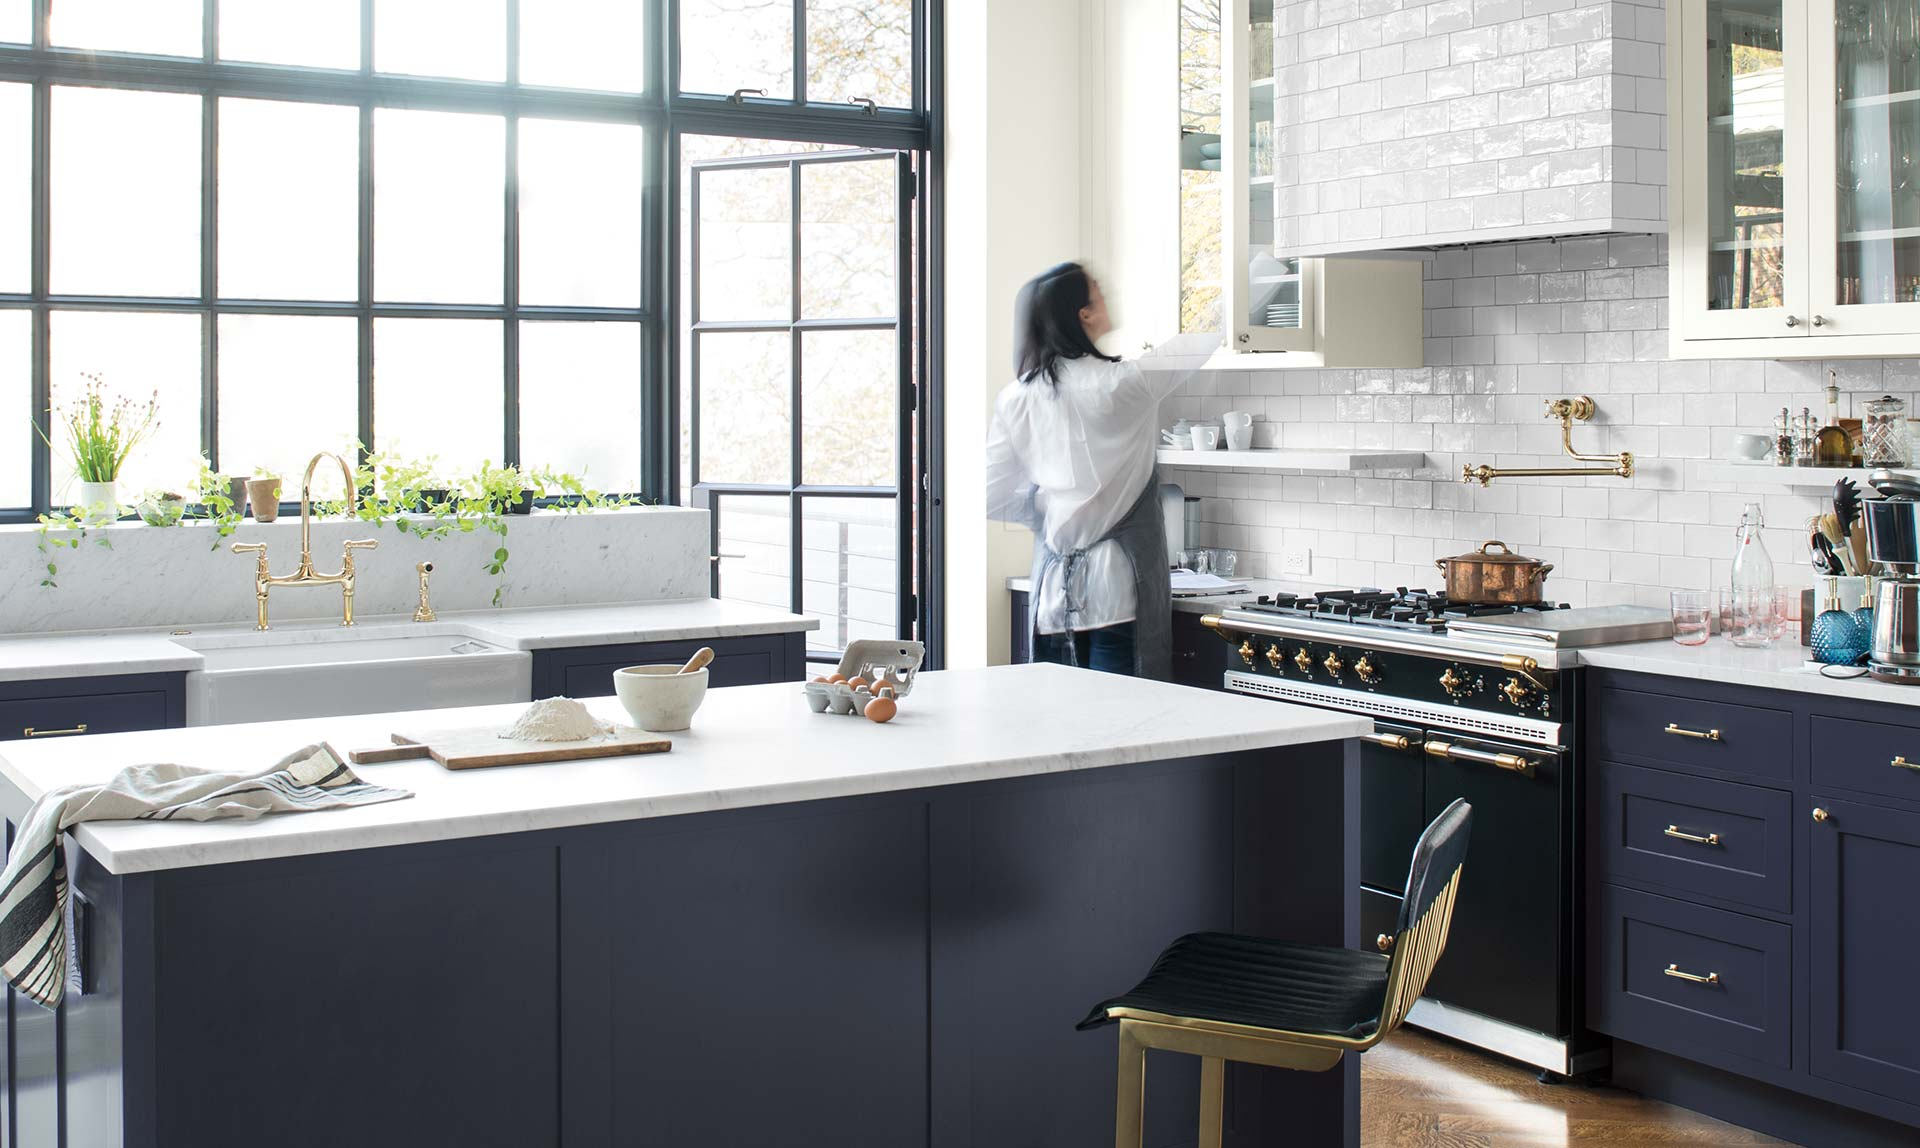 A buyer's guide to kitchen worktops - with lots of fresh ideas - by interior stylist Maxine Brady and lifestyle blogger at welovehomeblog.com